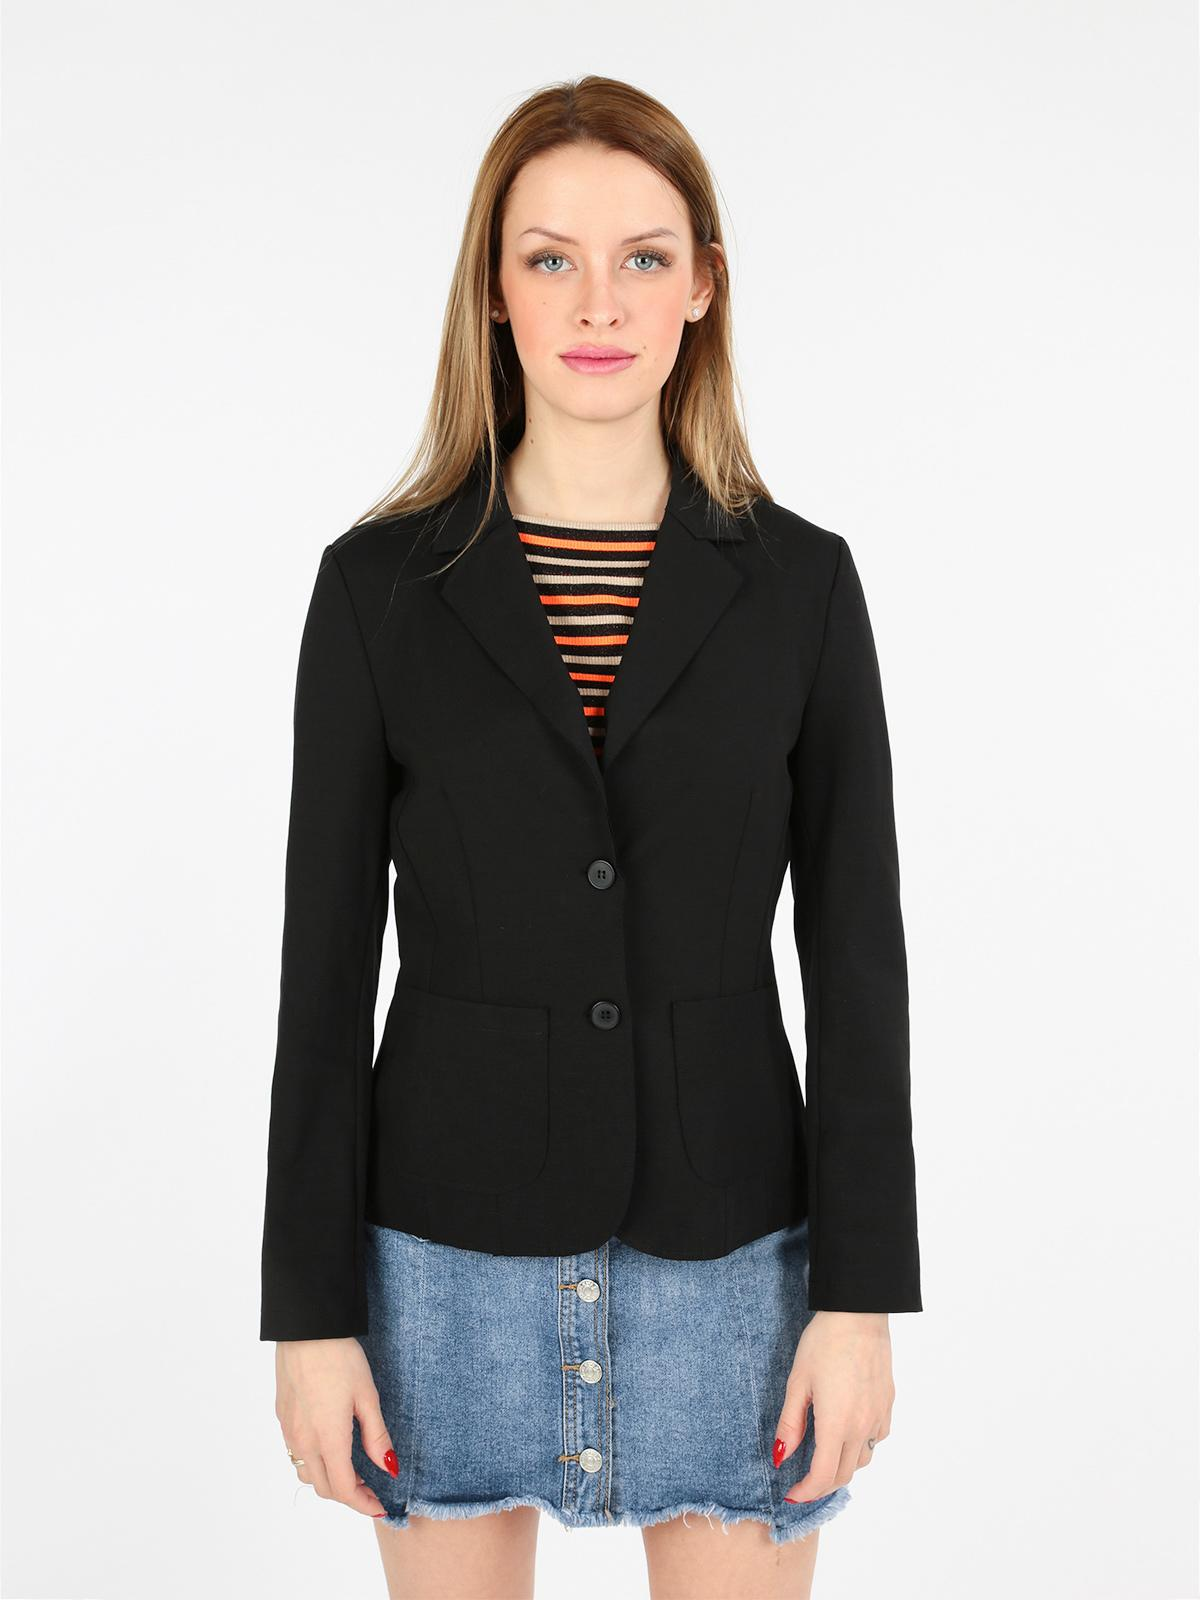 cheap for discount f6219 ba814 Giacca blazer nera wendy trendy | MecShopping